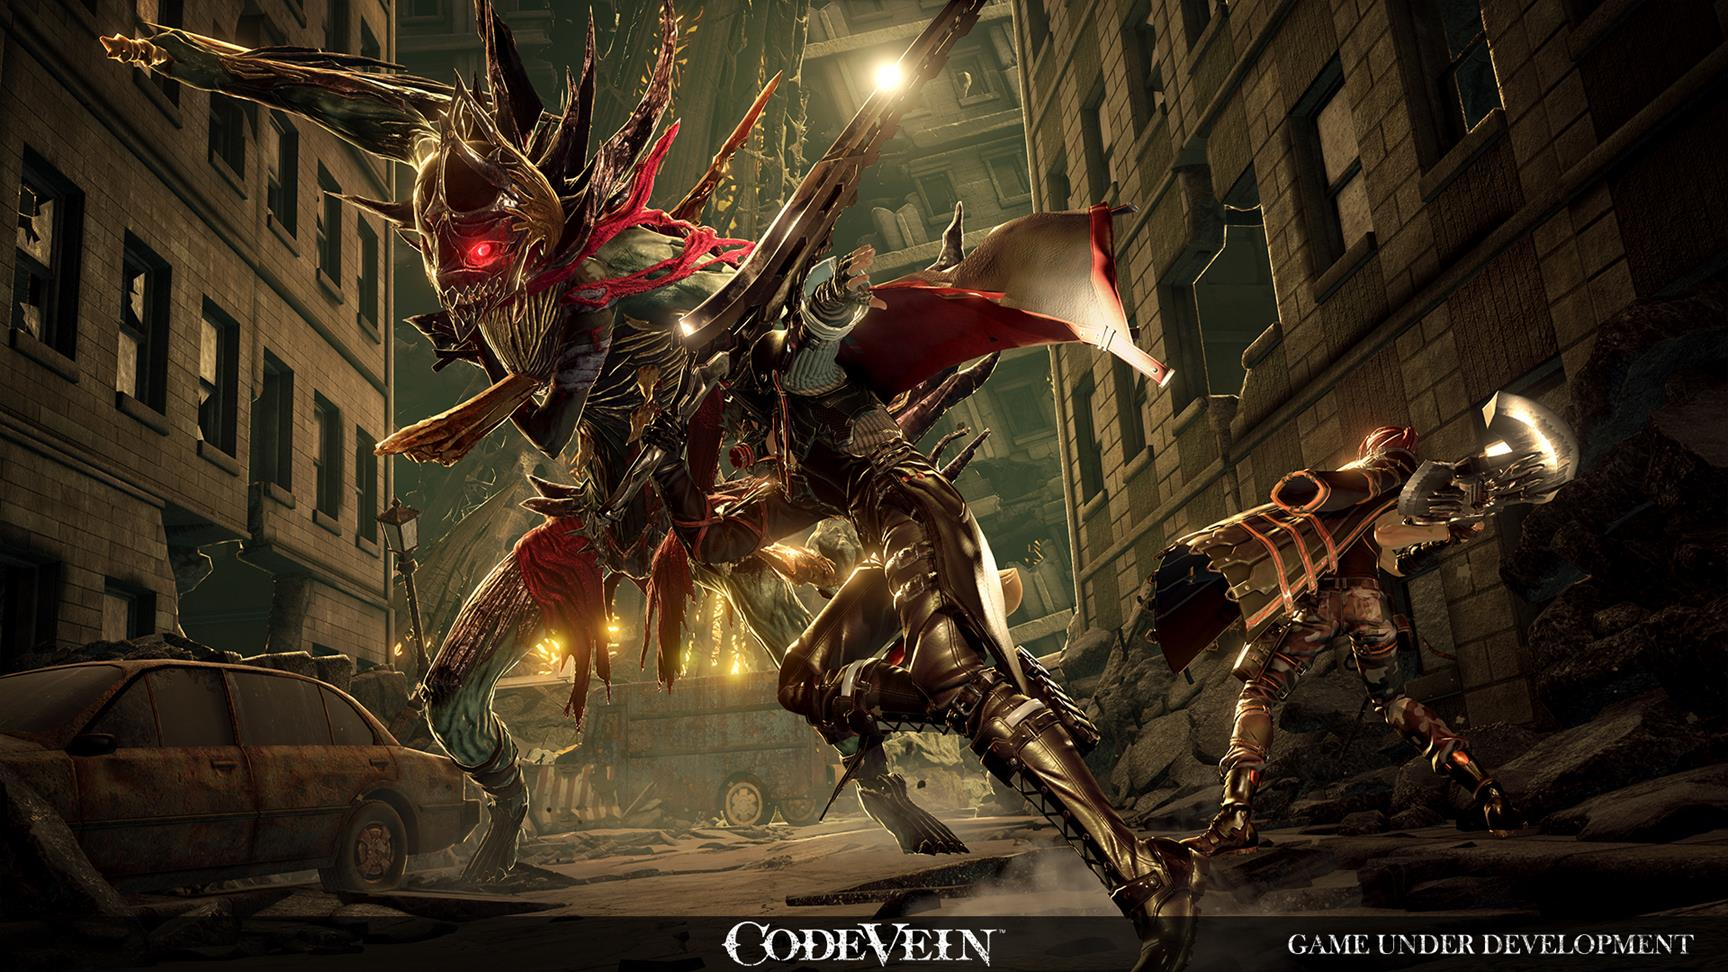 code_vein_reveal_screen_battle_1